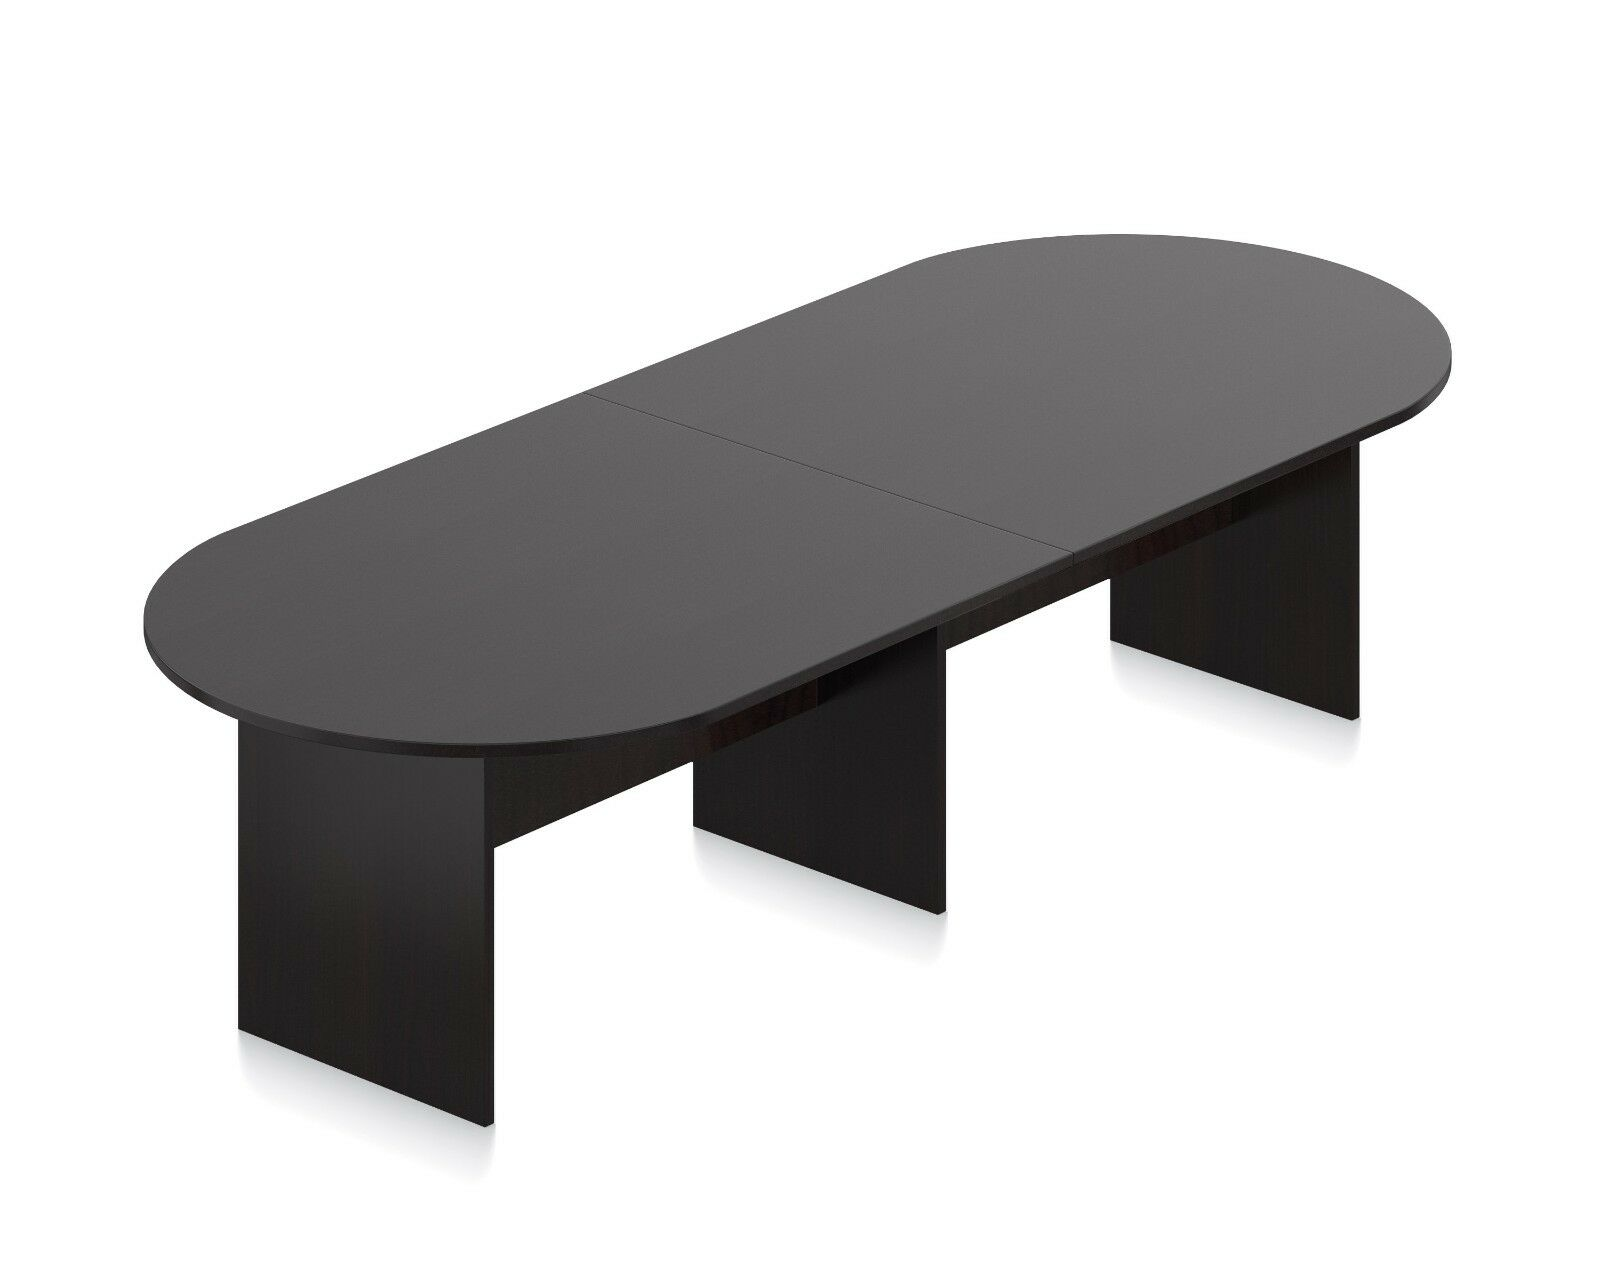 Ft Conference Boardroom Racetrack Table In Espresso Finish EBay - Conference room table price